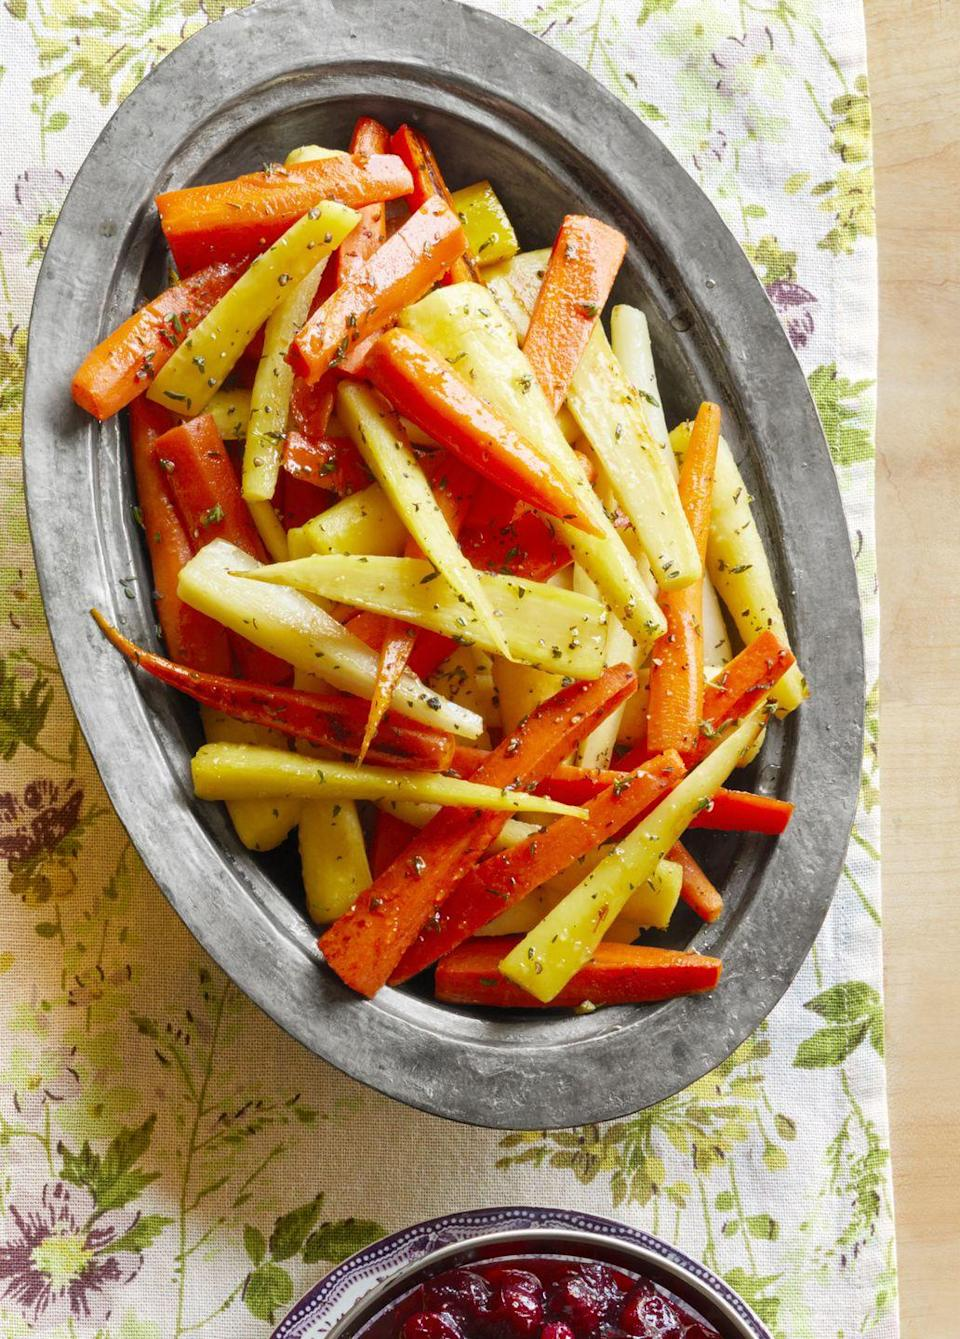 "<p>These fall-fresh veggies are perfect for your Turkey Day spread. This dish is savory, sweet, and downright delicious!</p><p><strong><a href=""https://www.thepioneerwoman.com/food-cooking/recipes/a33248884/honey-glazed-carrots-and-parsnips-recipe/"" rel=""nofollow noopener"" target=""_blank"" data-ylk=""slk:Get the recipe."" class=""link rapid-noclick-resp"">Get the recipe.</a></strong></p><p><a class=""link rapid-noclick-resp"" href=""https://go.redirectingat.com?id=74968X1596630&url=https%3A%2F%2Fwww.walmart.com%2Fbrowse%2Fhome%2Fserving-platters-trays%2F4044_623679_639999_2347672_7413764%3Ffacet%3Dbrand%253AThe%2BPioneer%2BWoman&sref=https%3A%2F%2Fwww.thepioneerwoman.com%2Ffood-cooking%2Fmeals-menus%2Fg33251890%2Fbest-thanksgiving-sides%2F"" rel=""nofollow noopener"" target=""_blank"" data-ylk=""slk:SHOP SERVING PLATTERS"">SHOP SERVING PLATTERS</a></p>"